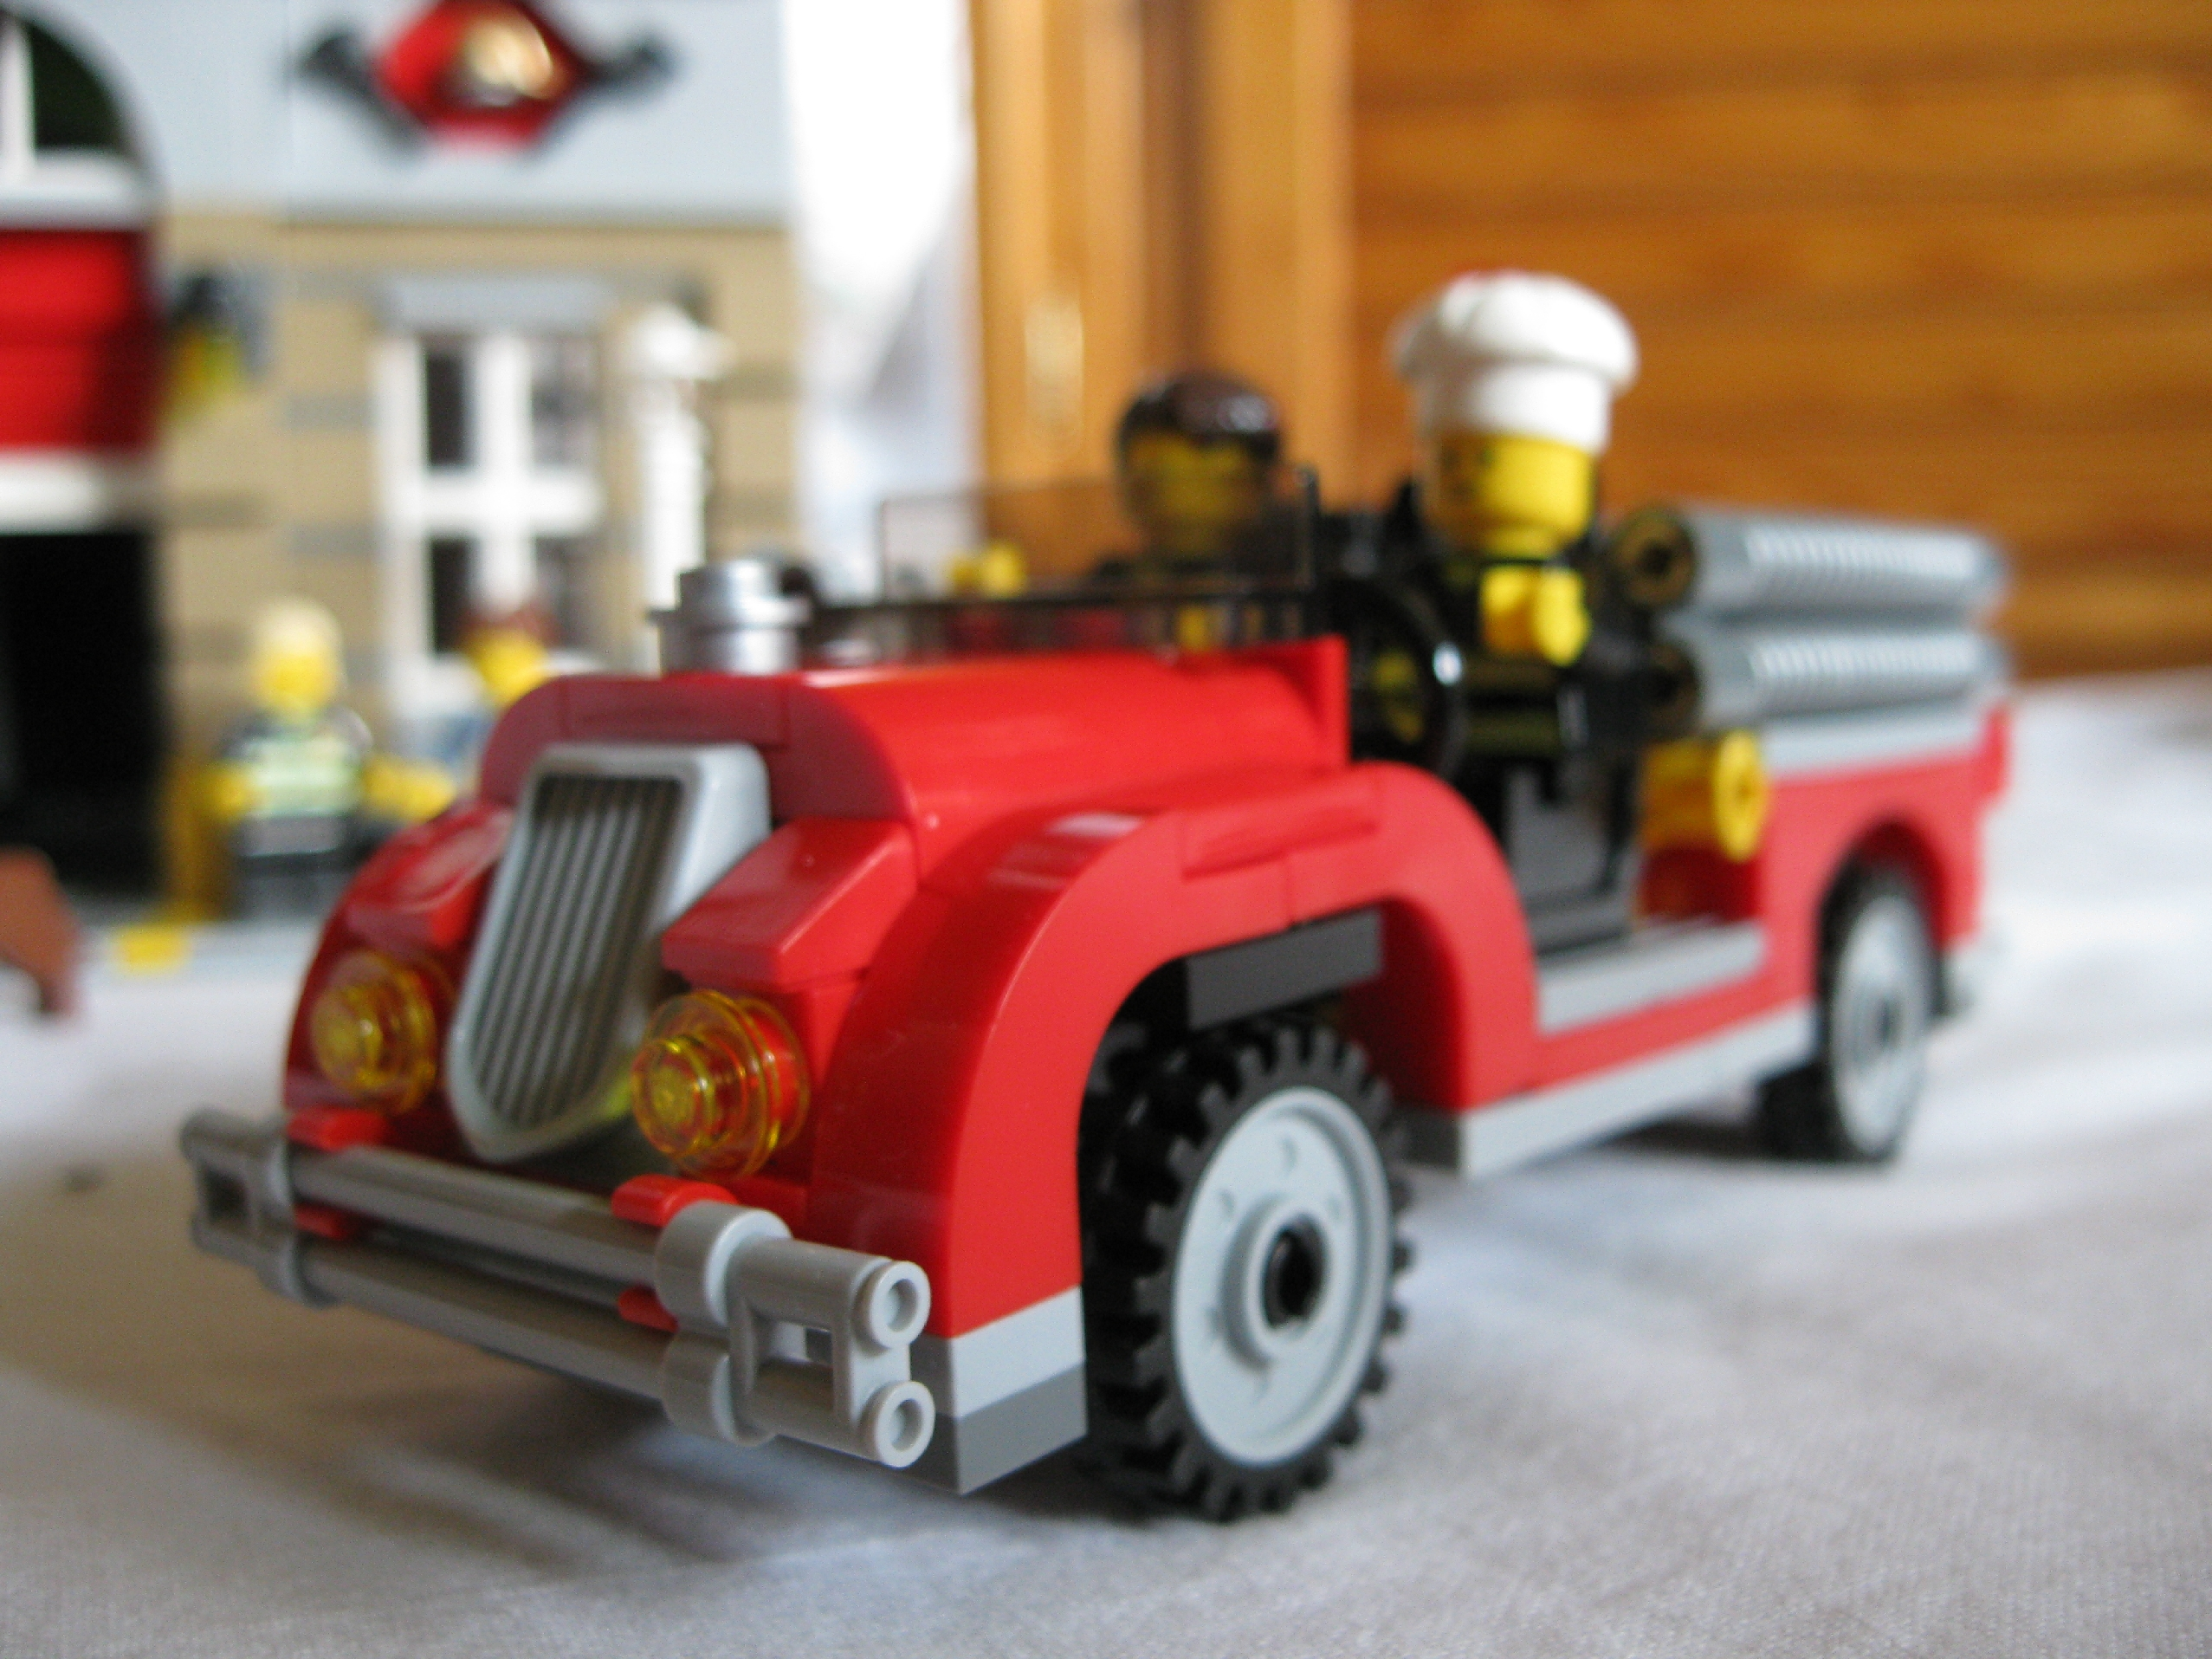 10197fireengineside5.jpg